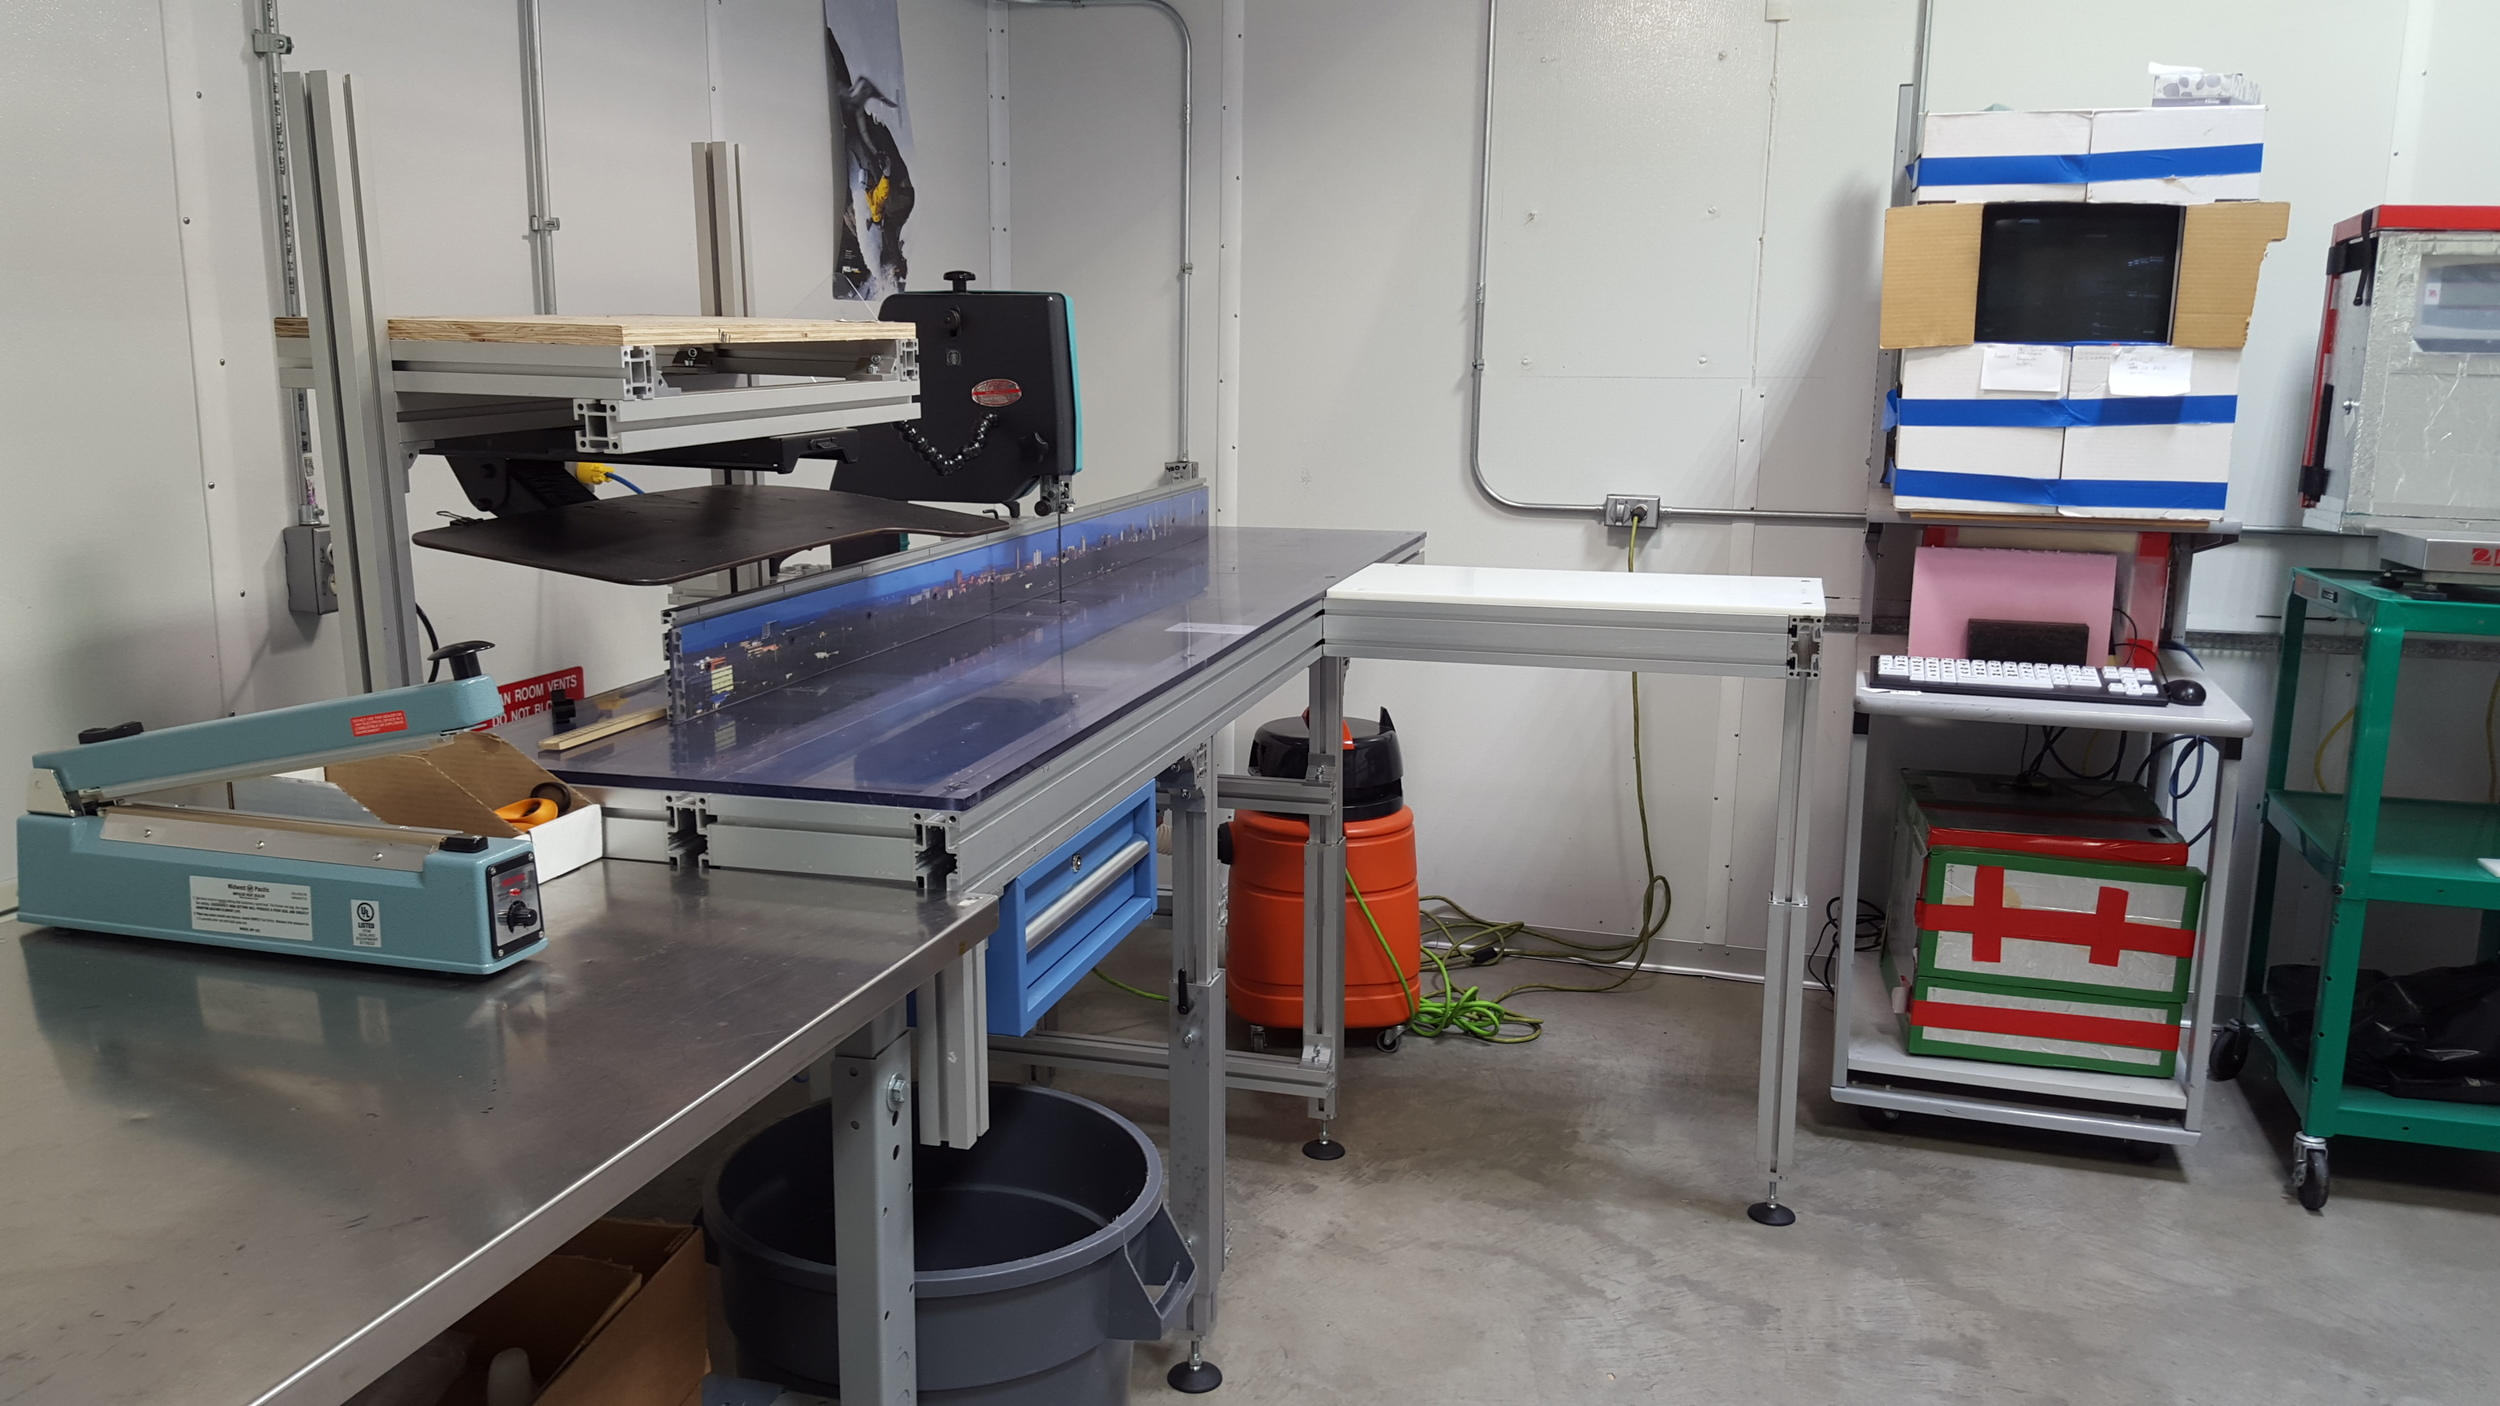 """Our ice-cutting station in the """"warm"""" room. Those cardboard boxes on the right are makeshift insulation for the computer, which otherwise wouldn't work at these temperatures."""